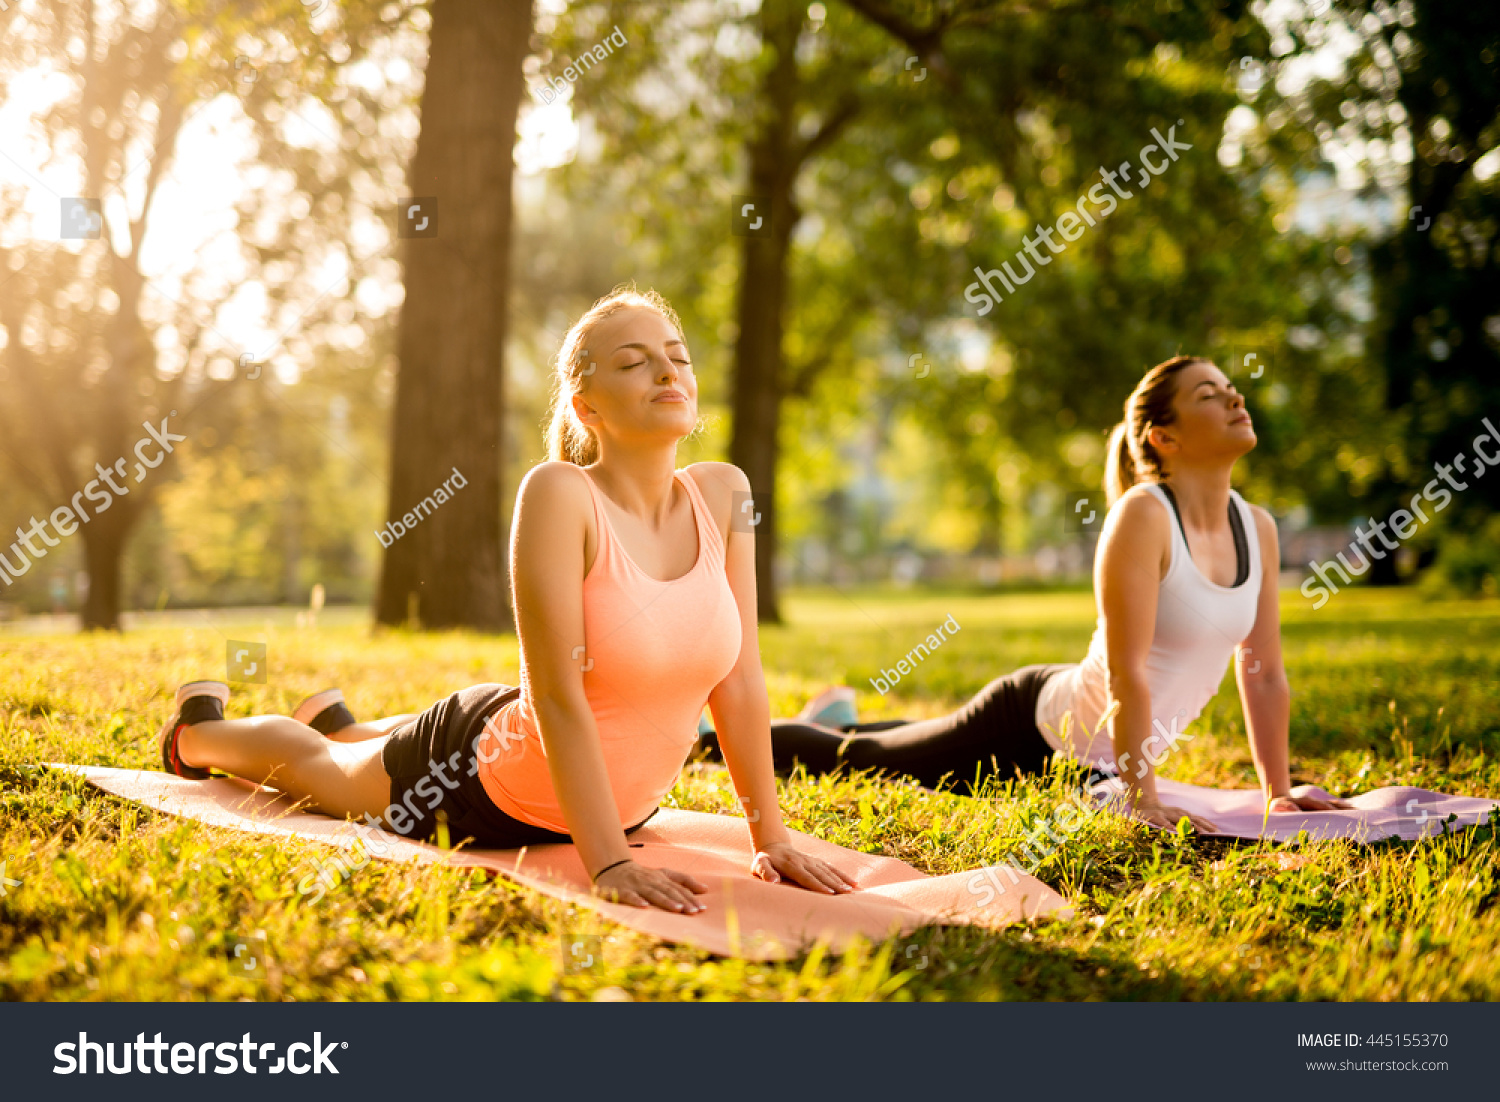 Women doing yoga outdoors in the park